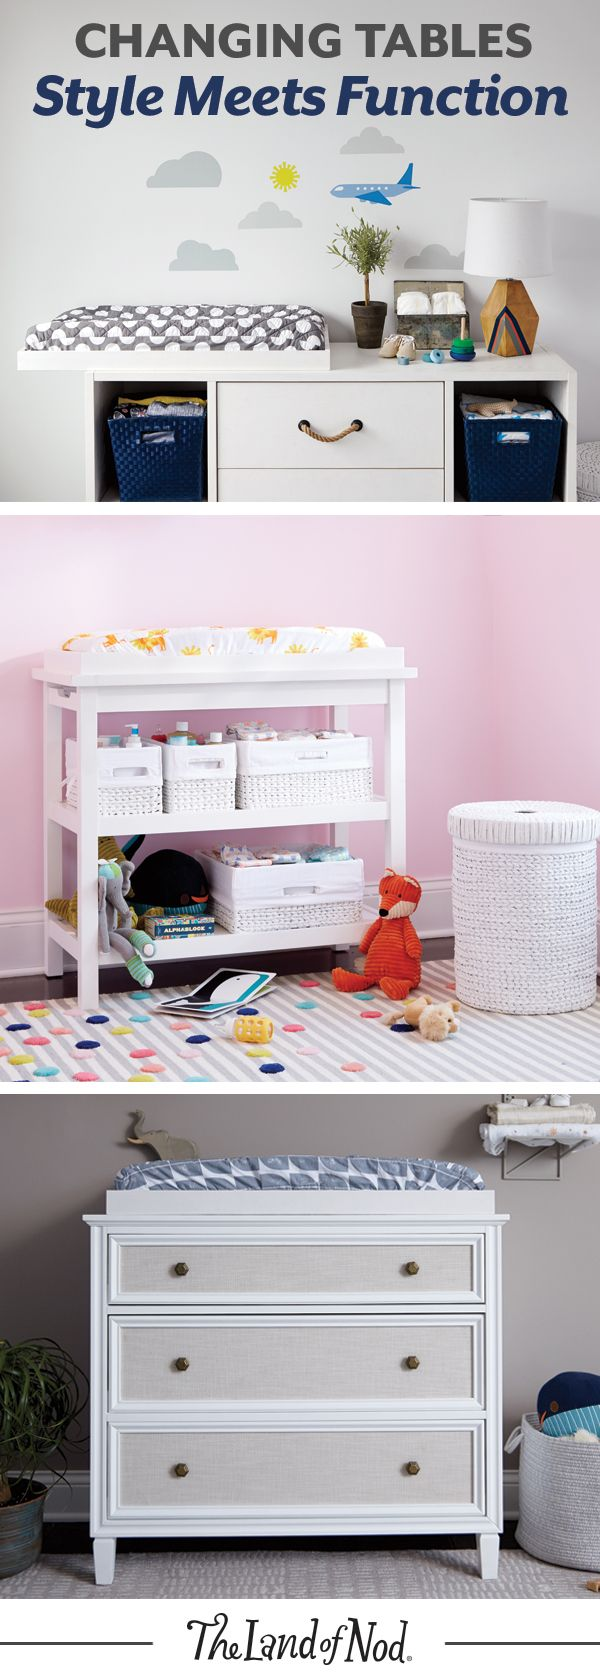 Stylish and versatile, a diaper changing station is an essential for any nursery. Designing an instant changing table for your baby is easy by placing a changing table topper on a wide dresser. Then, add storage bins to hold diapers, lotions and more.